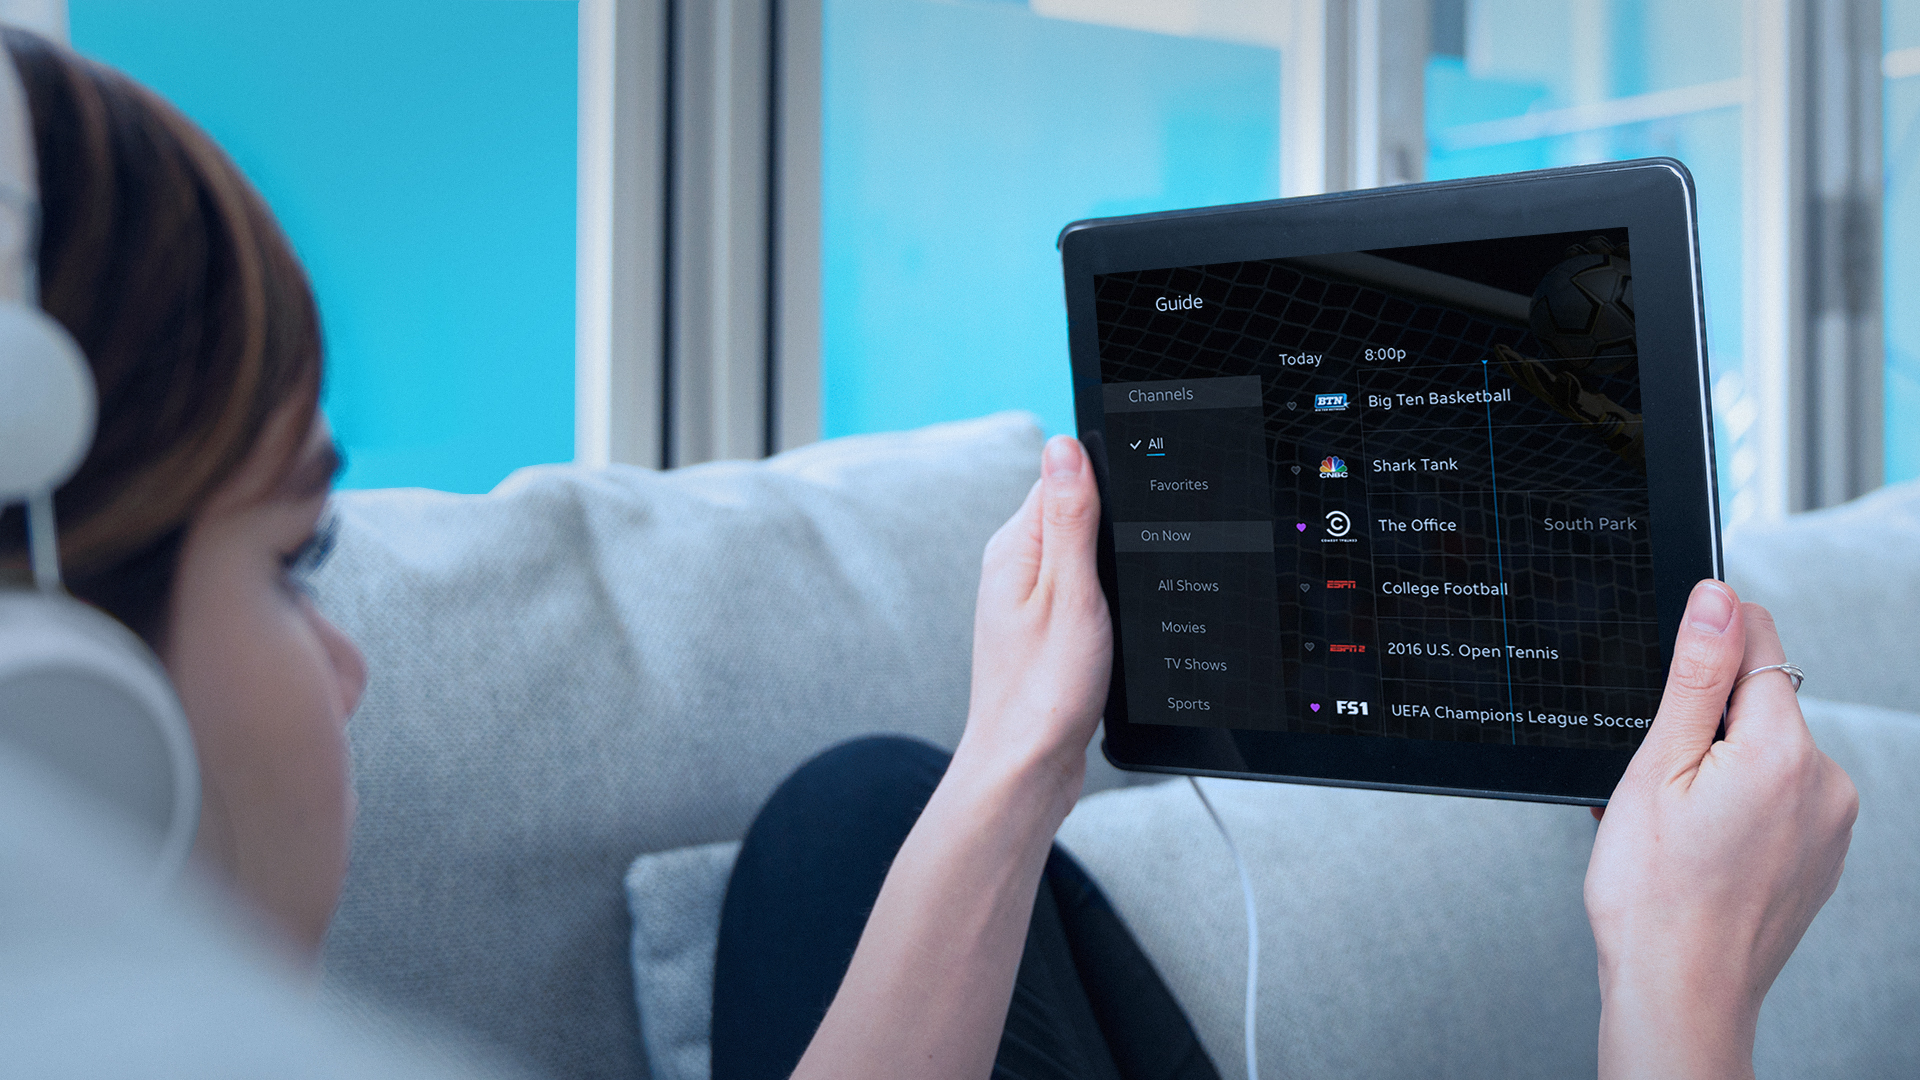 DirecTV Now cloud DVR goes live for all customers